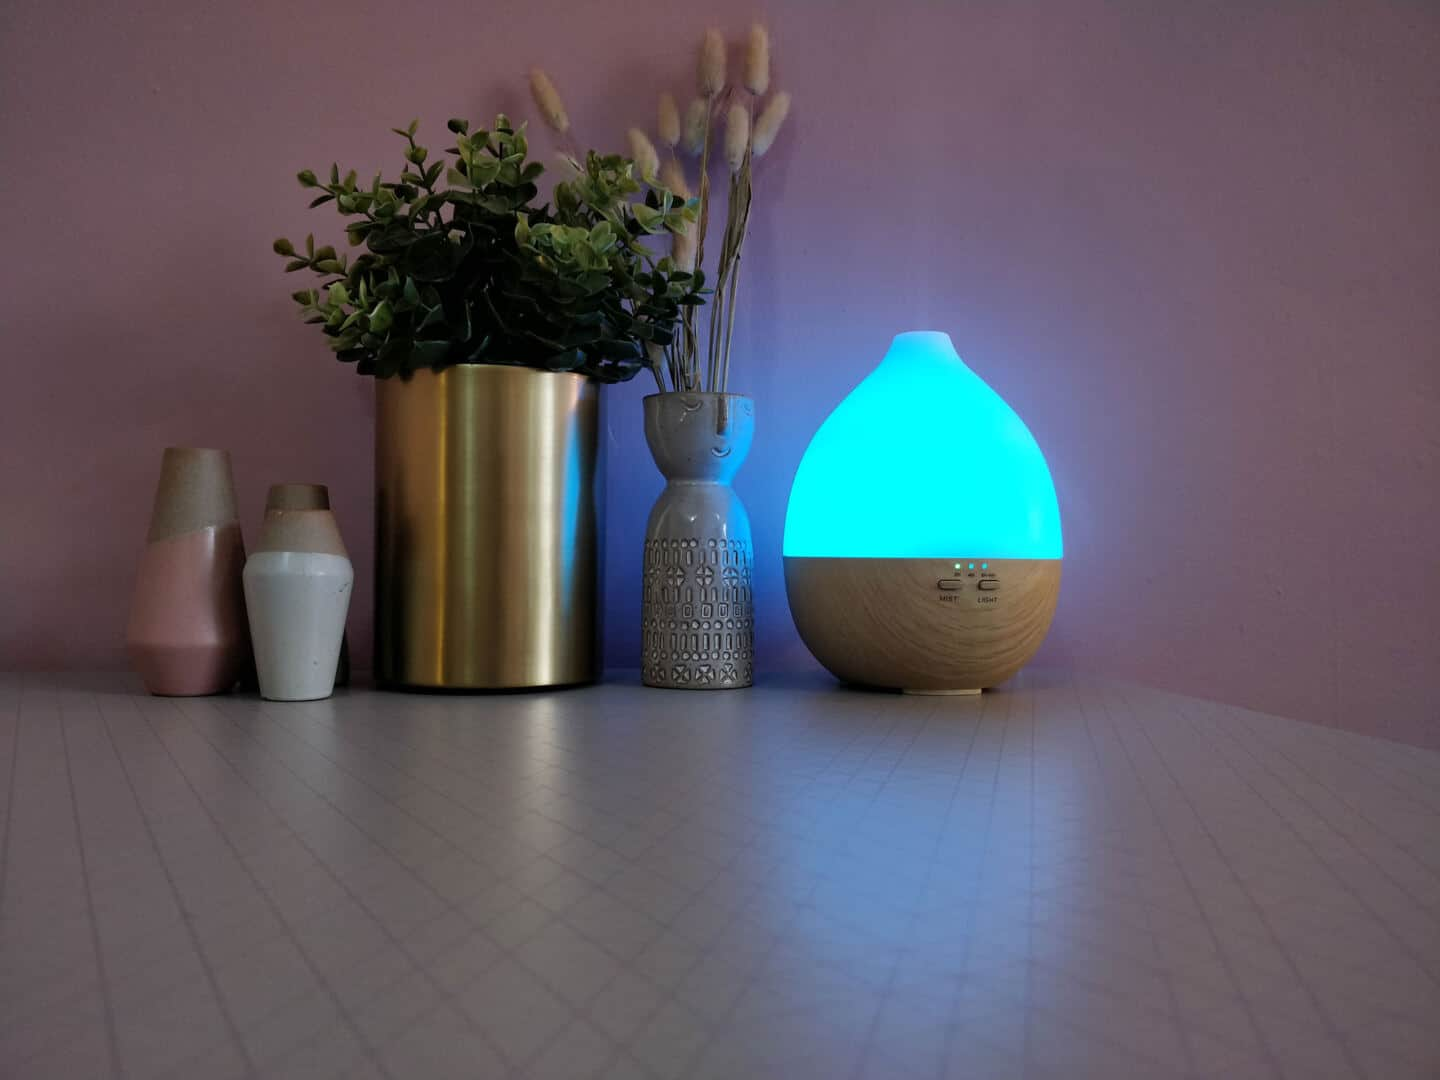 Smellacloud aroma diffuser with the blue LED light illuminated